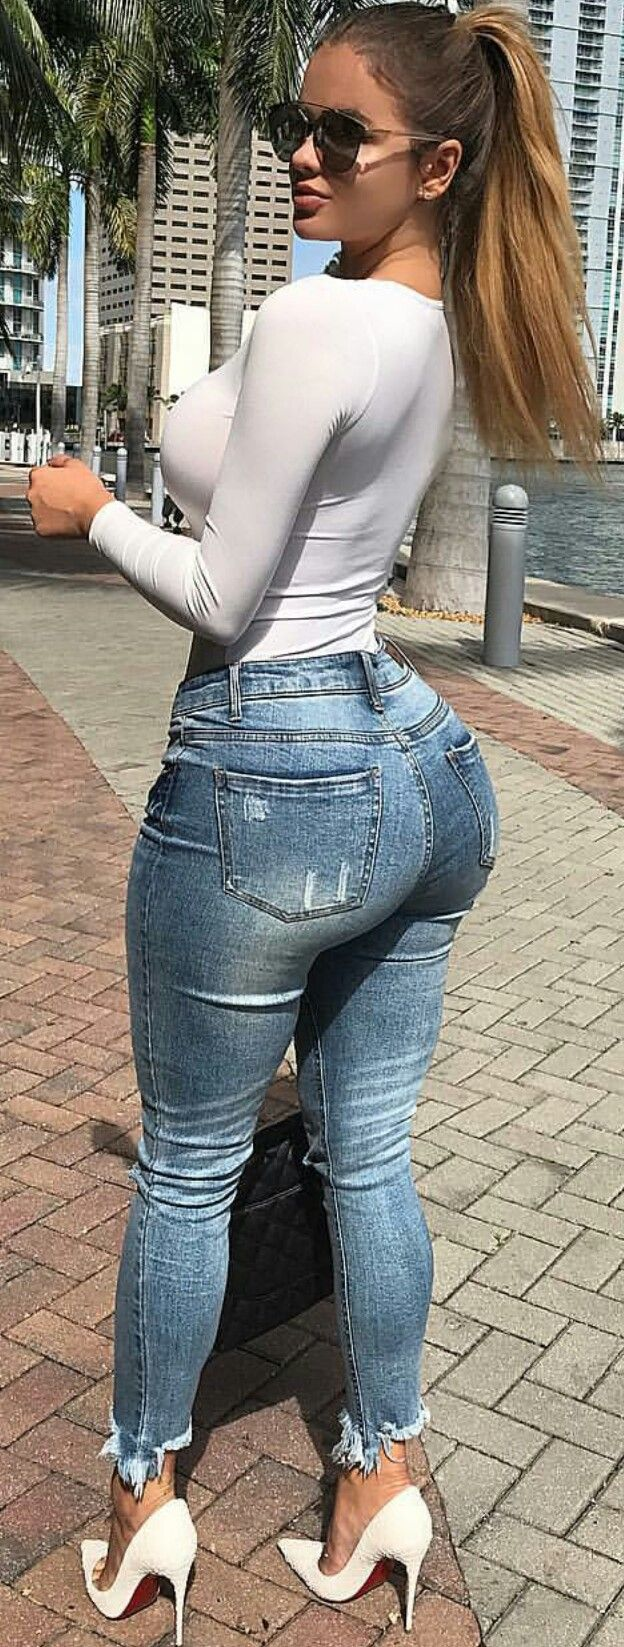 skinny jeans ass